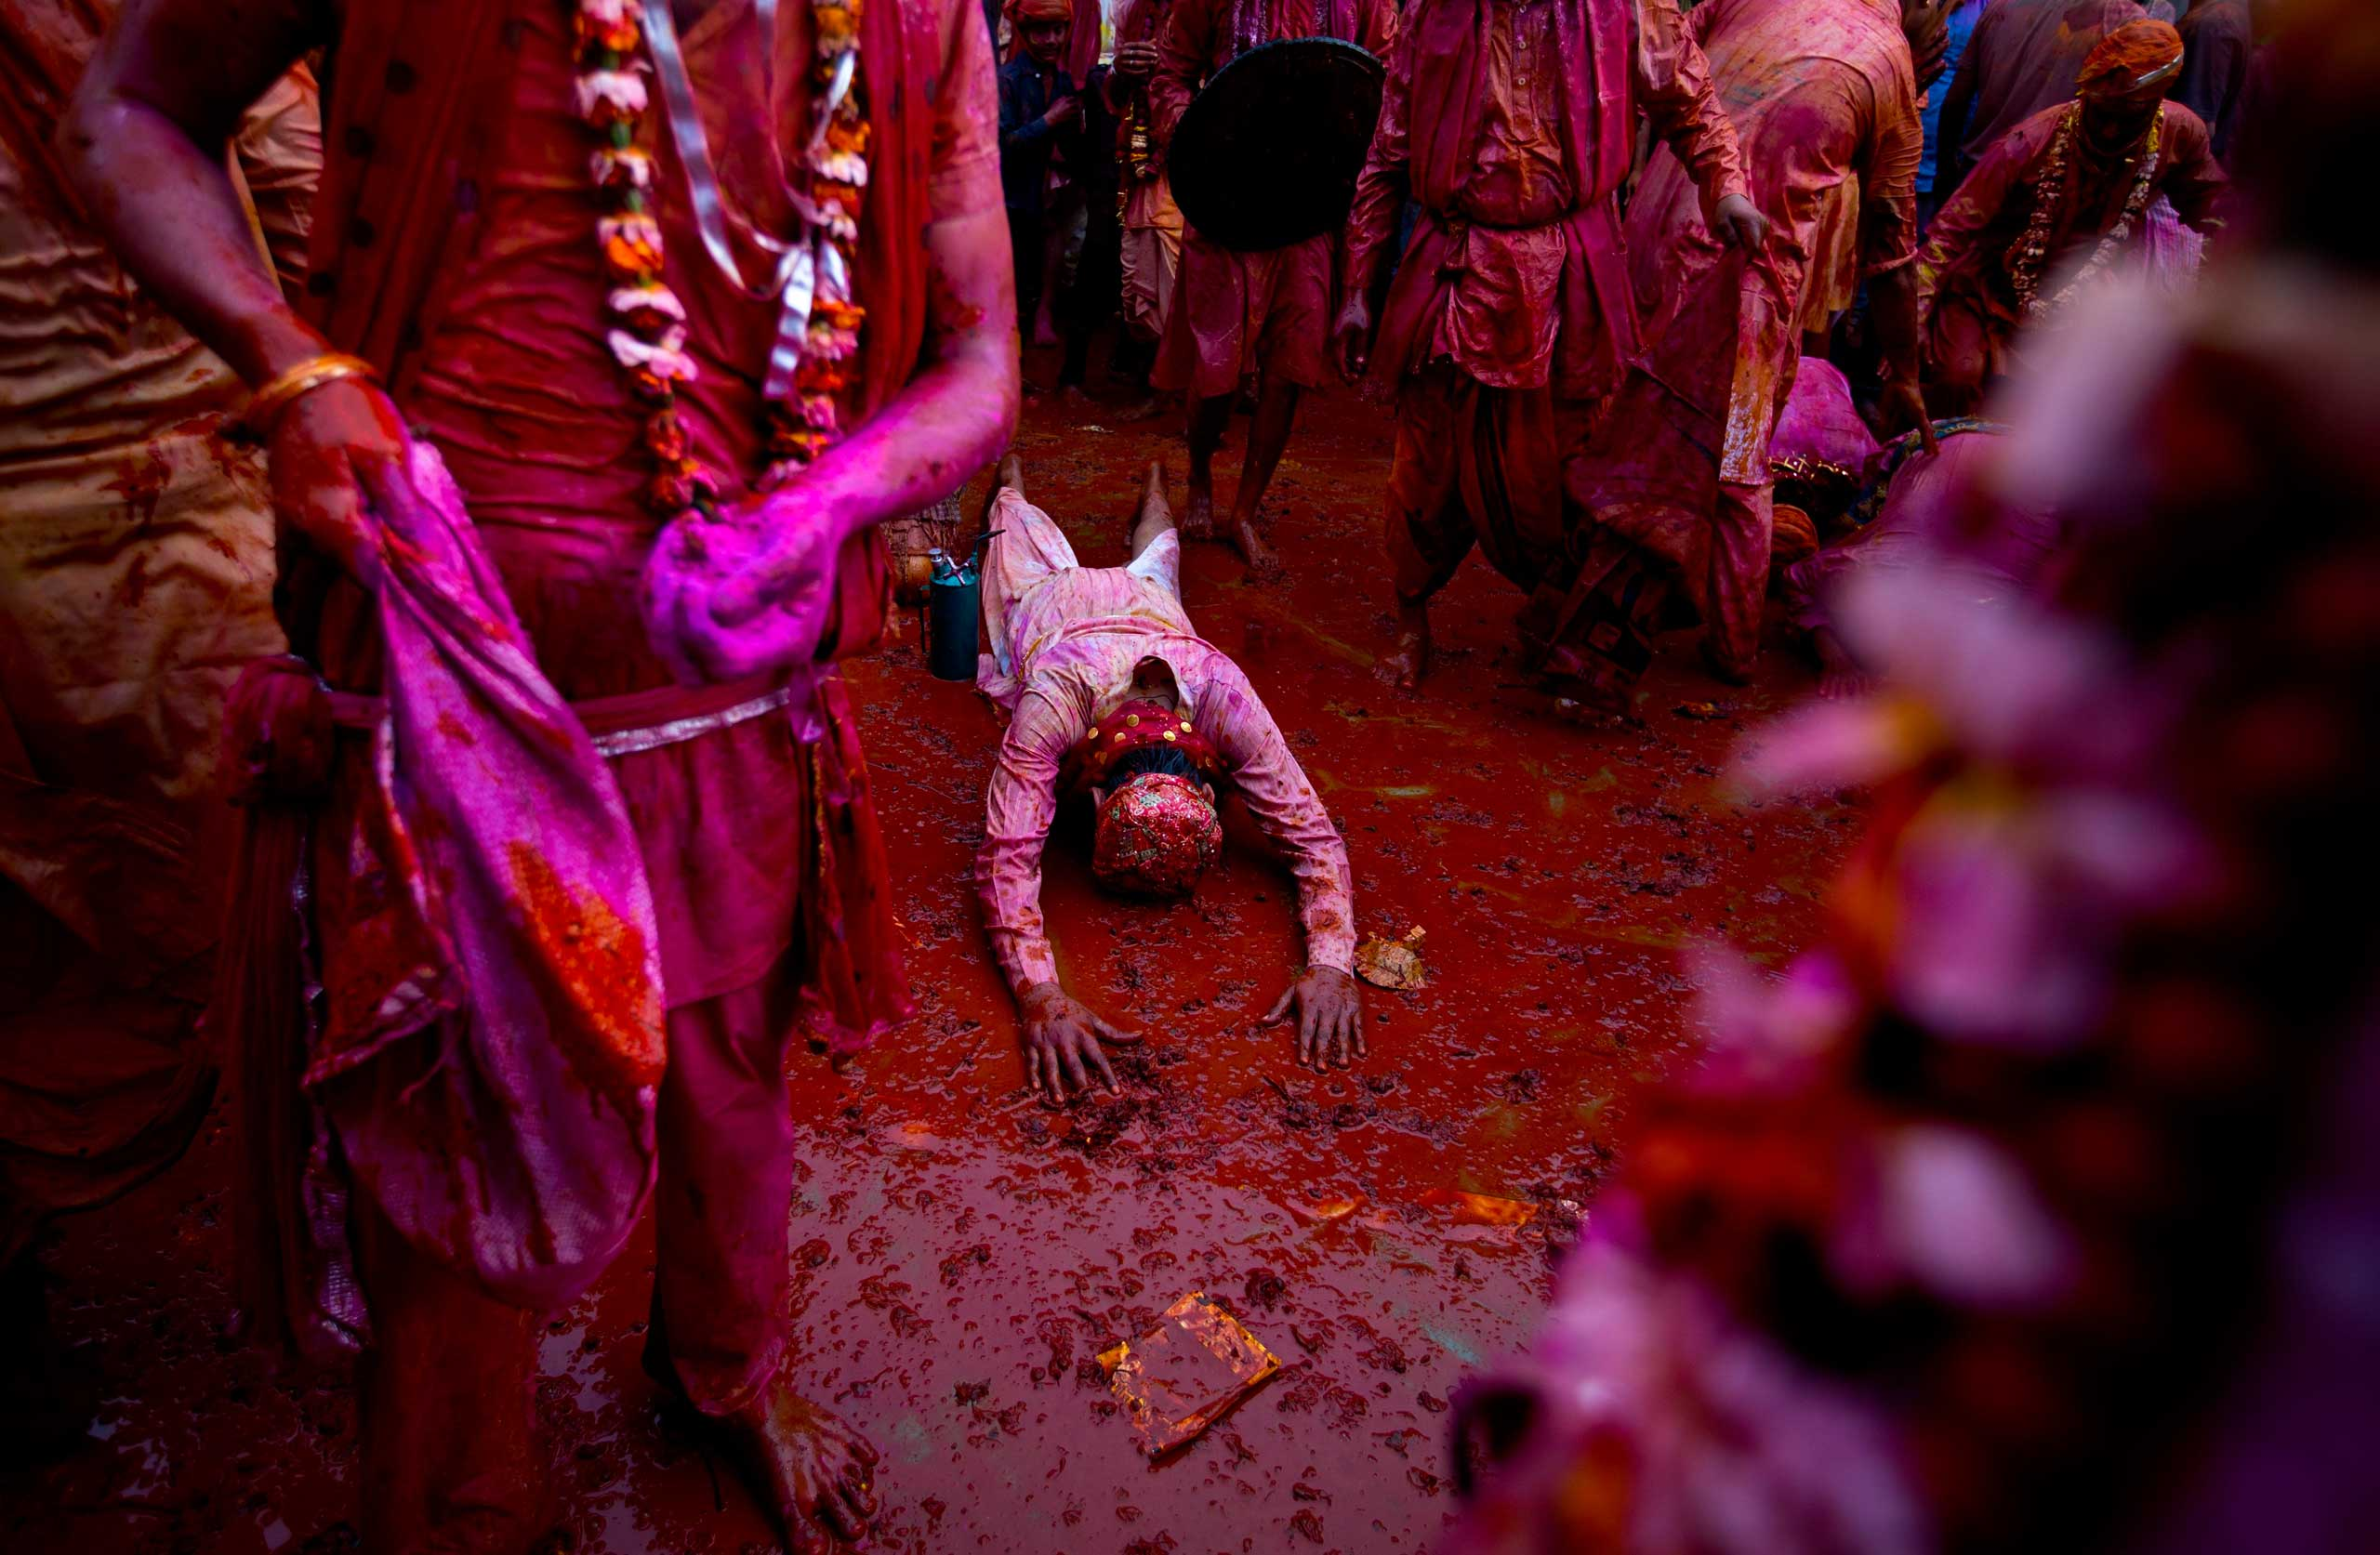 An Indian Hindu devotee from Barsana village prostrates amid colors as he prays at the Nandagram temple, famous for Lord Krishna and his brother Balram, during Lathmar holi festival, in Nandgaon, India, Feb. 28, 2015.